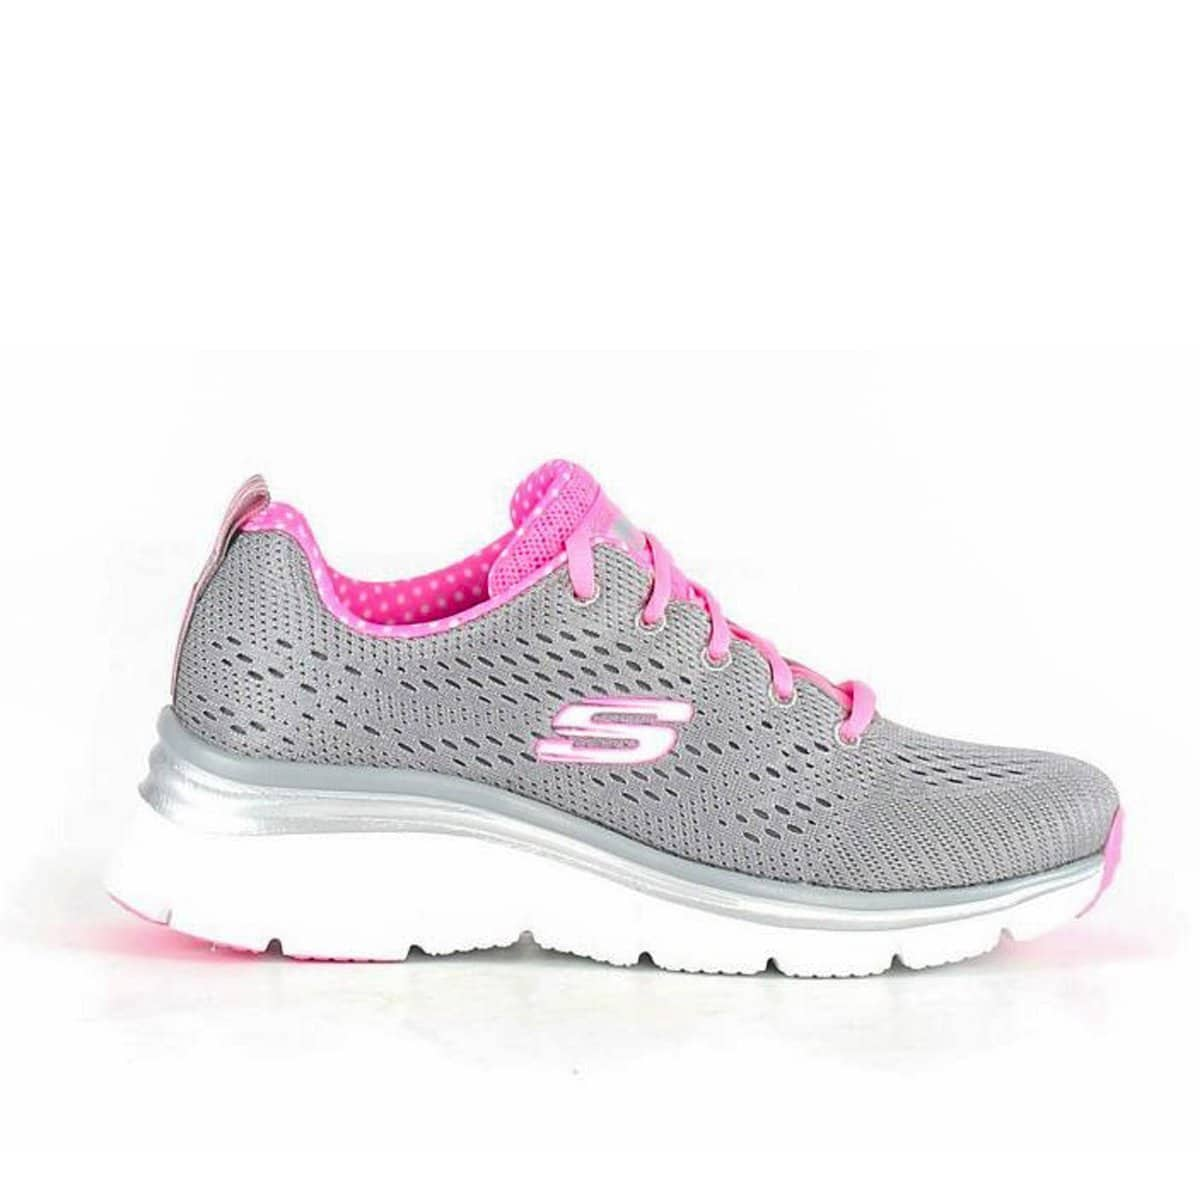 Scarpa Skechers donna Statement Piece | Ares Sport